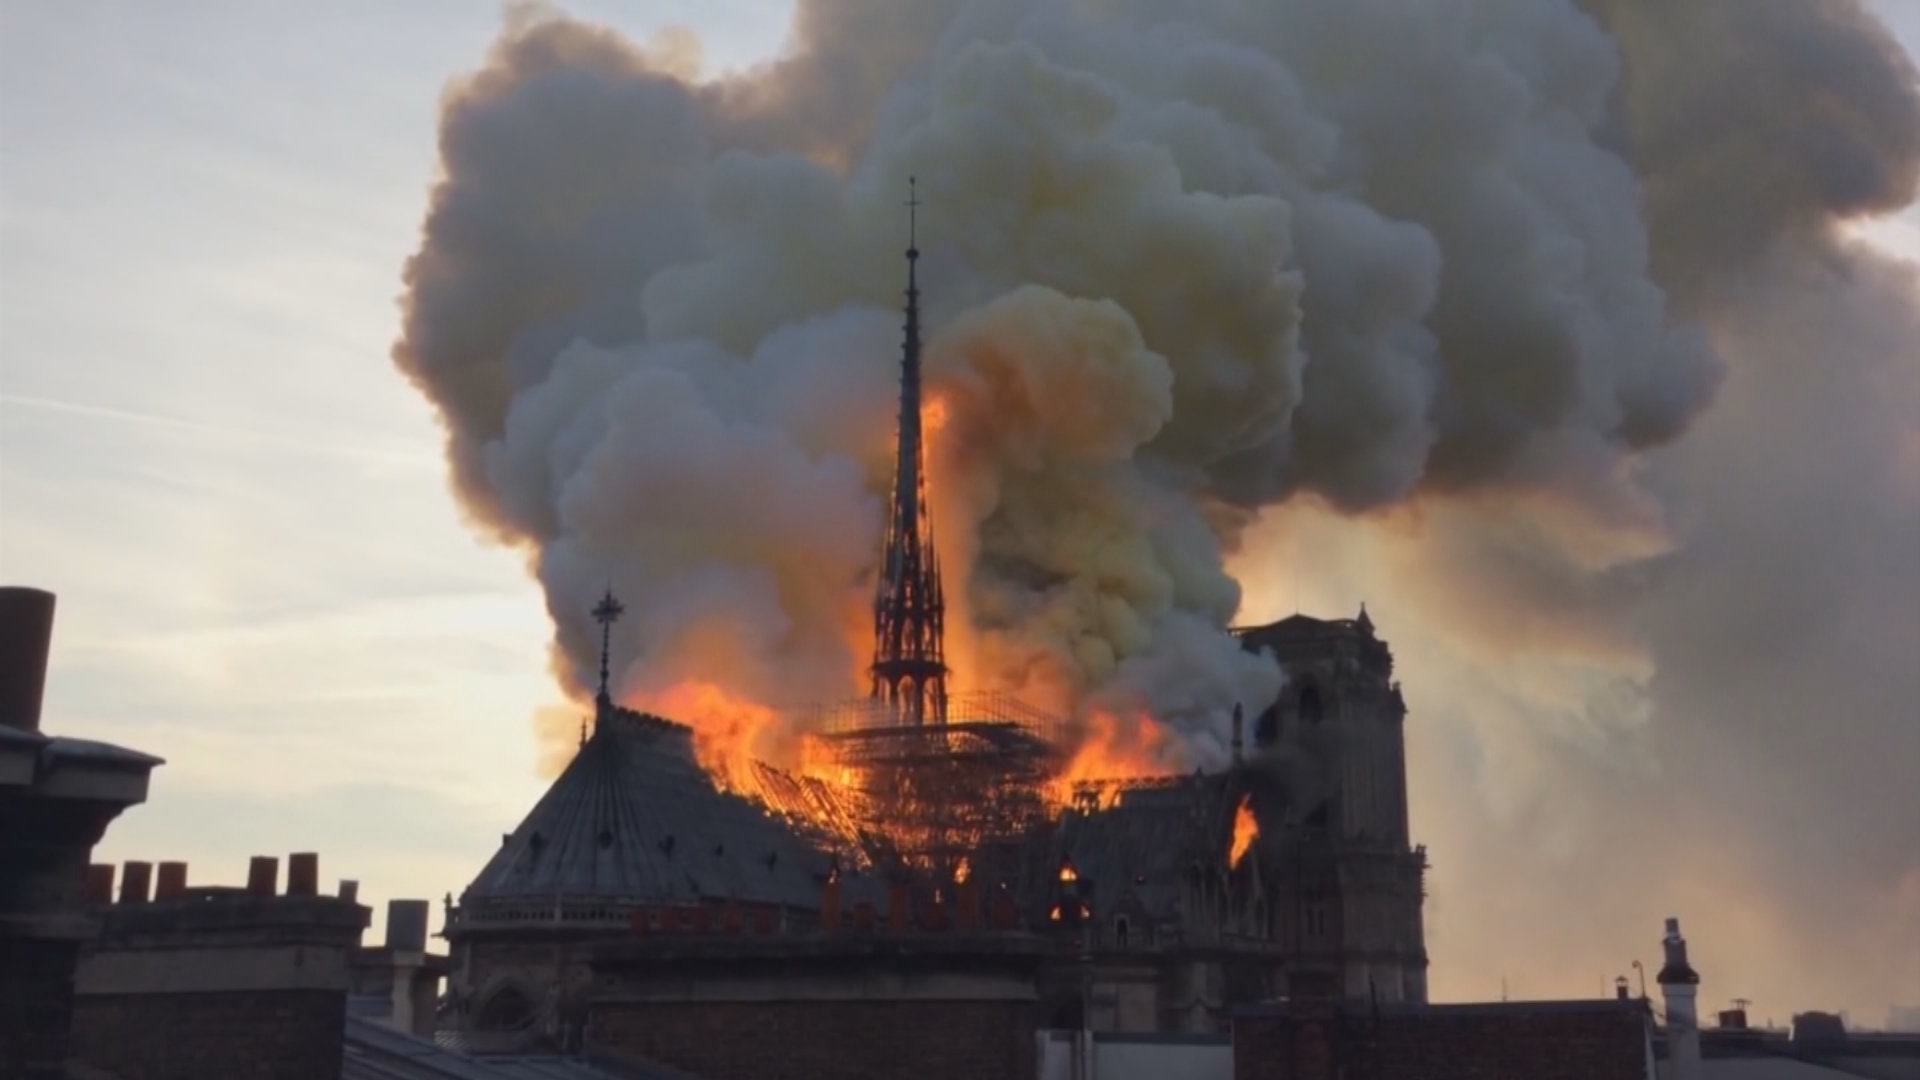 Cigarette, electrical issues could be cause behind Notre Dame Cathedral fire in Paris